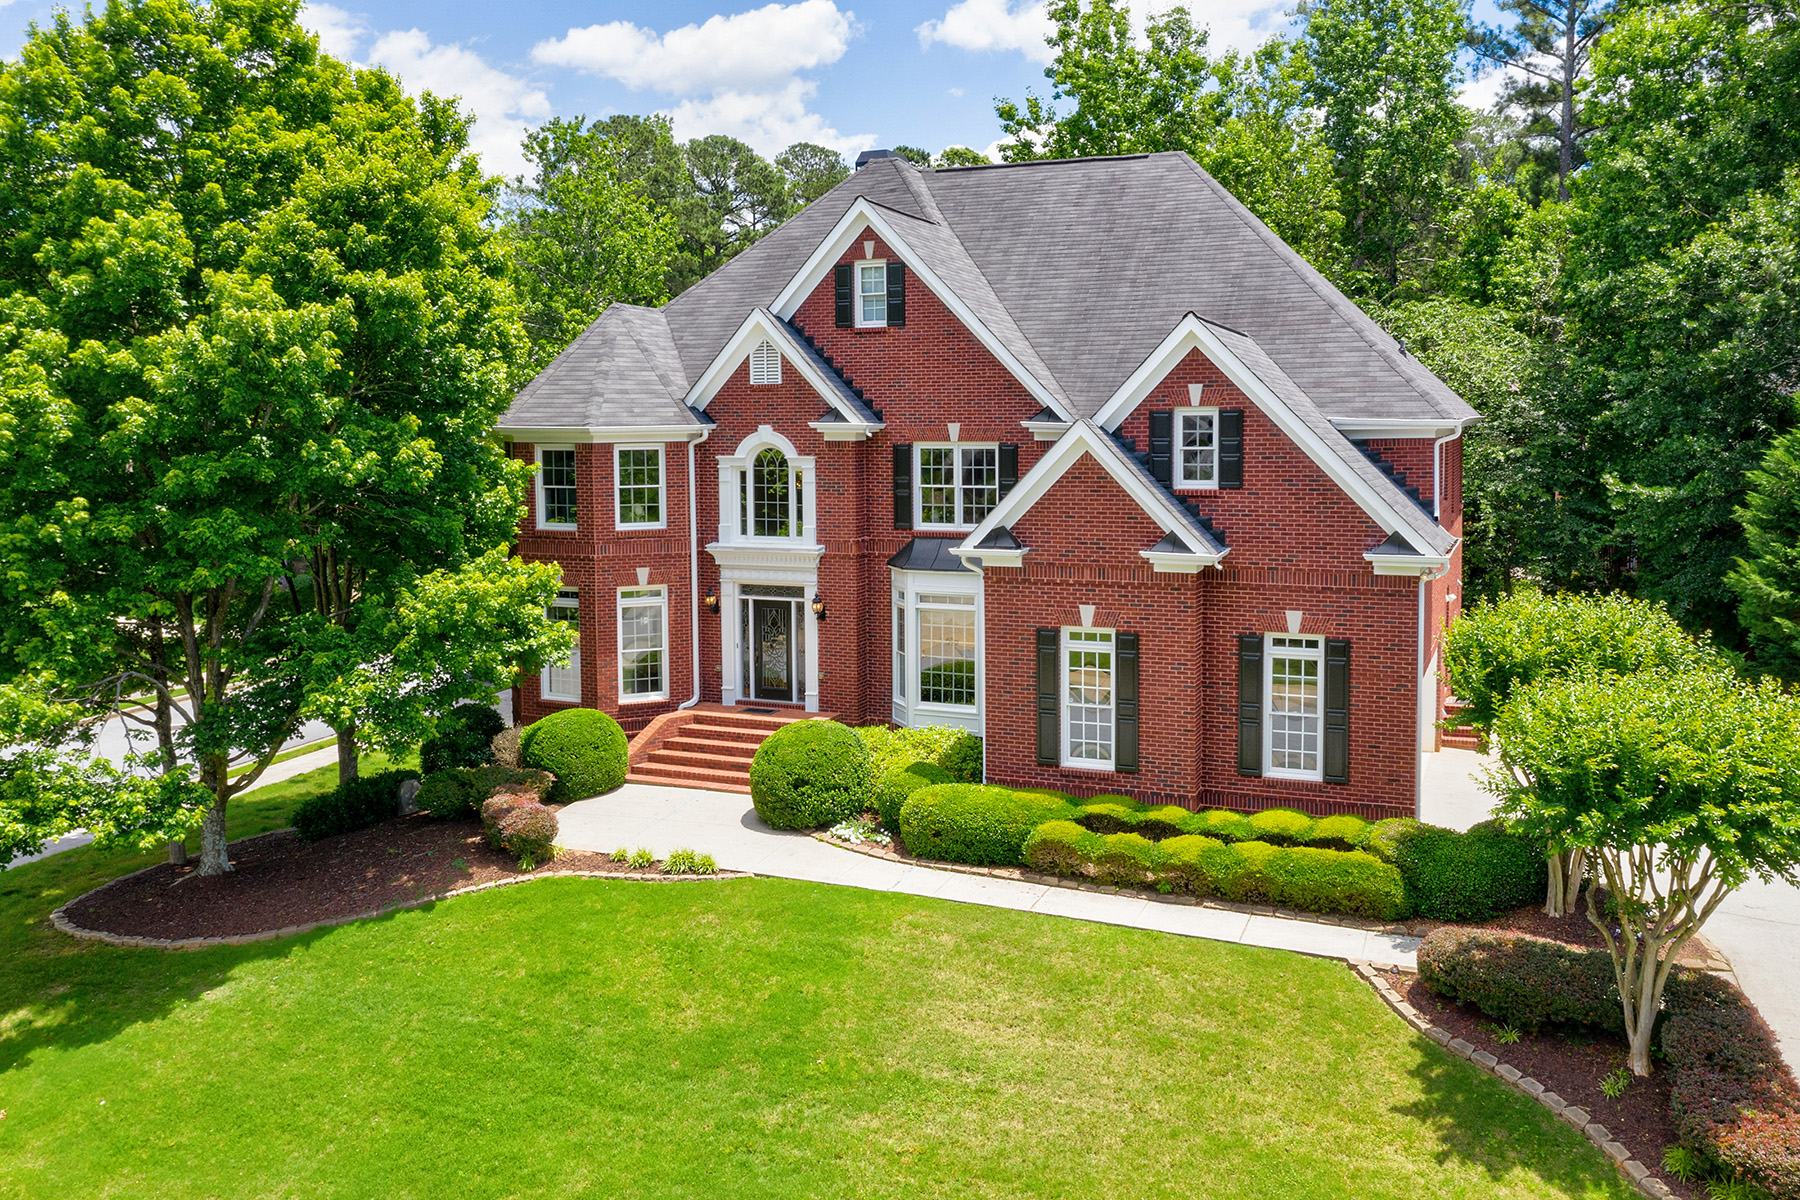 Single Family Homes for Sale at Beautiful Home In Amberfield, Peachtree Corners! 5120 Wild Ginger Cove Peachtree Corners, Georgia 30092 United States